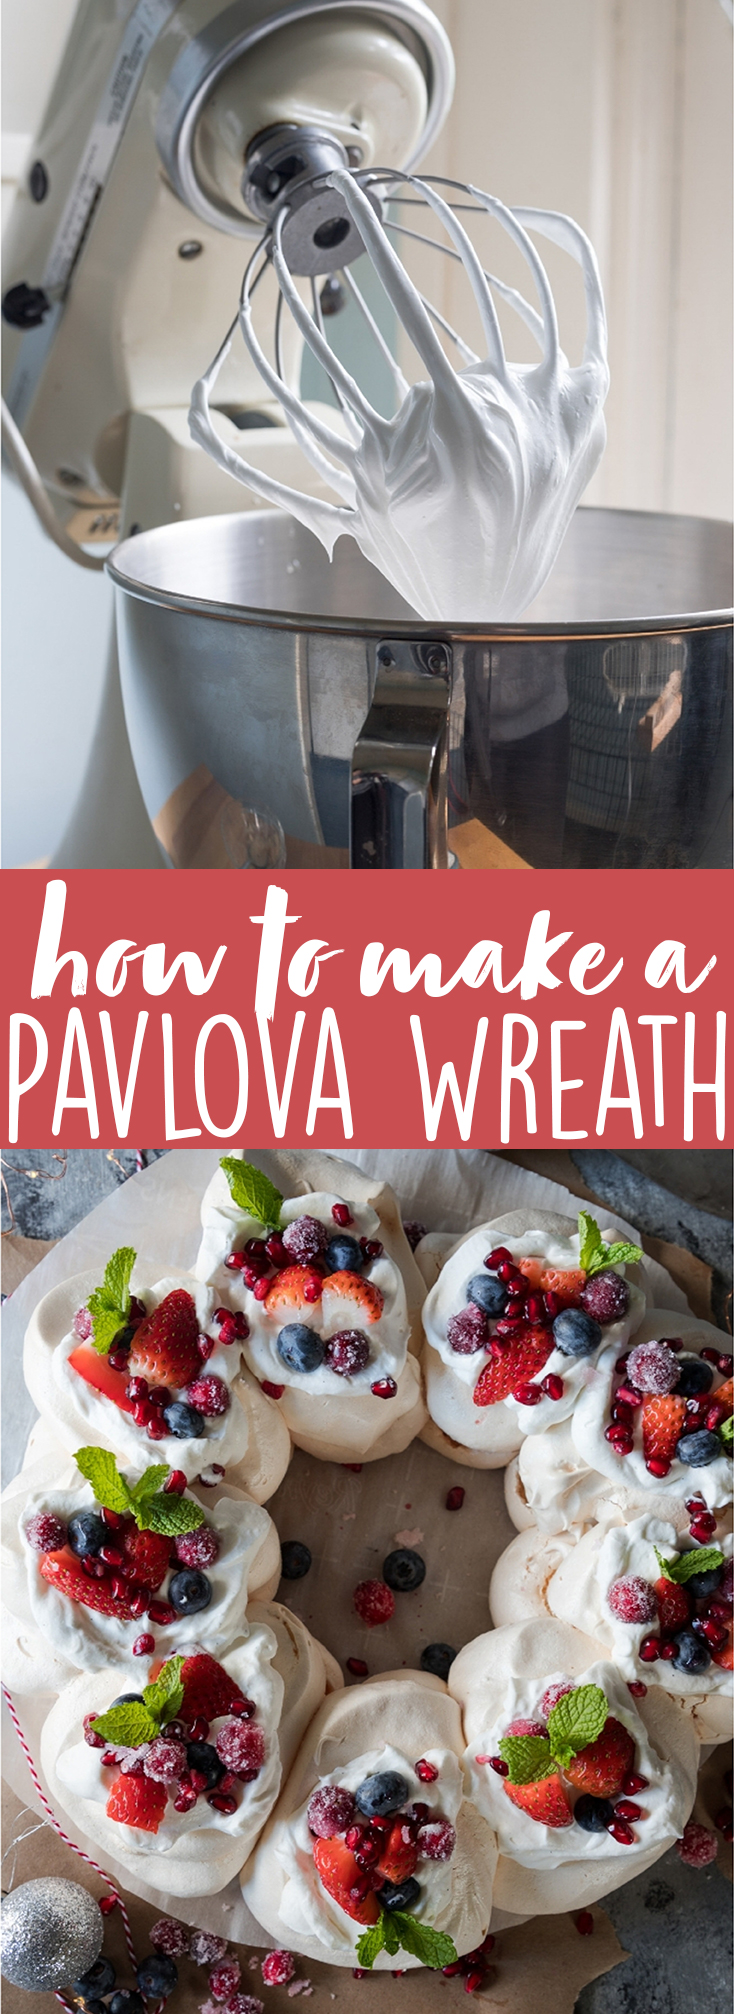 The Christmas desserts of all Christmas desserts! This pavlova wreath is an absolutely gorgeous dessert recipe that will wow your Christmas guests! A beautiful showstopper for the table and with some easy tips and tricks, you'll be nailing this in no time! Pavlova | Dessert recipe | Christmas dessert